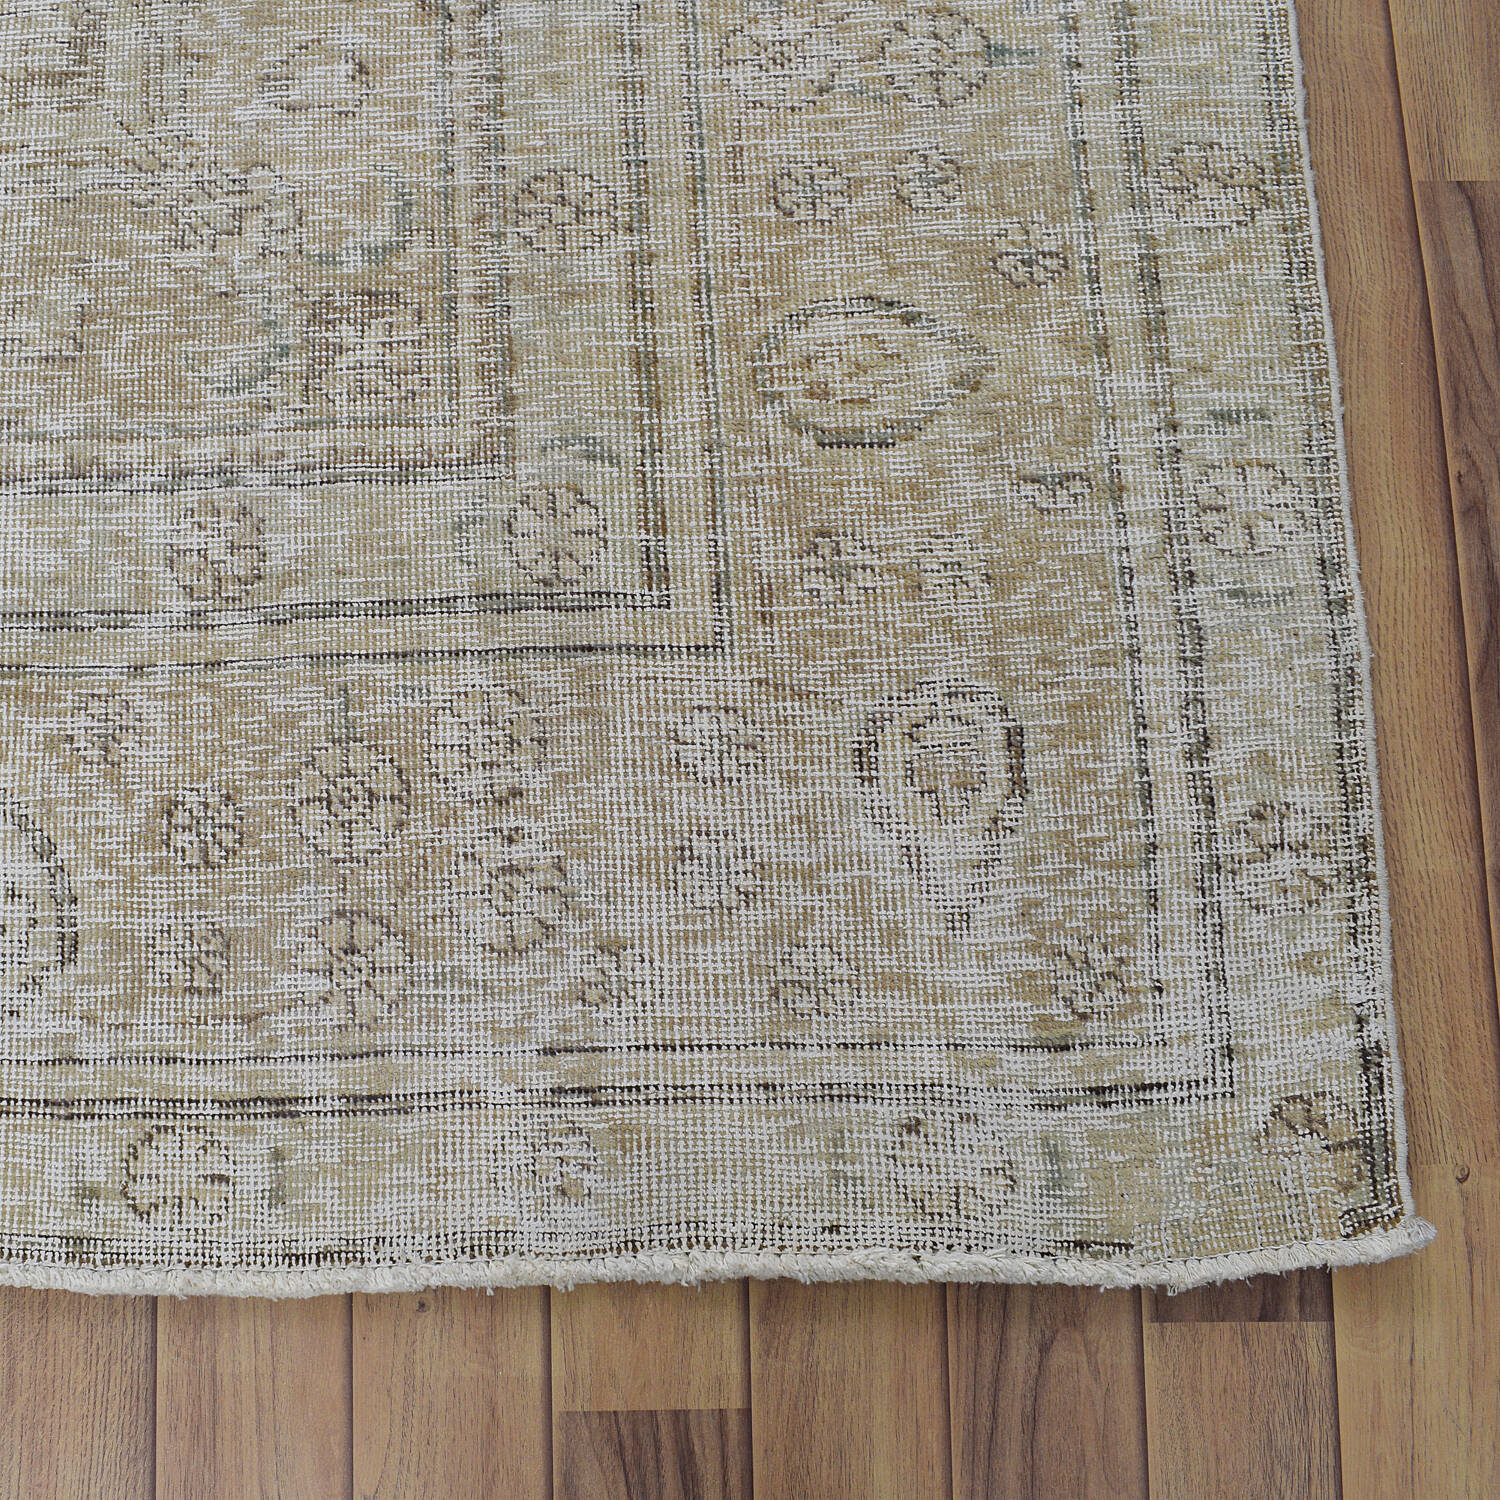 Antique Muted Floral Tabriz Distressed Persian Area Rug 8x11 image 5